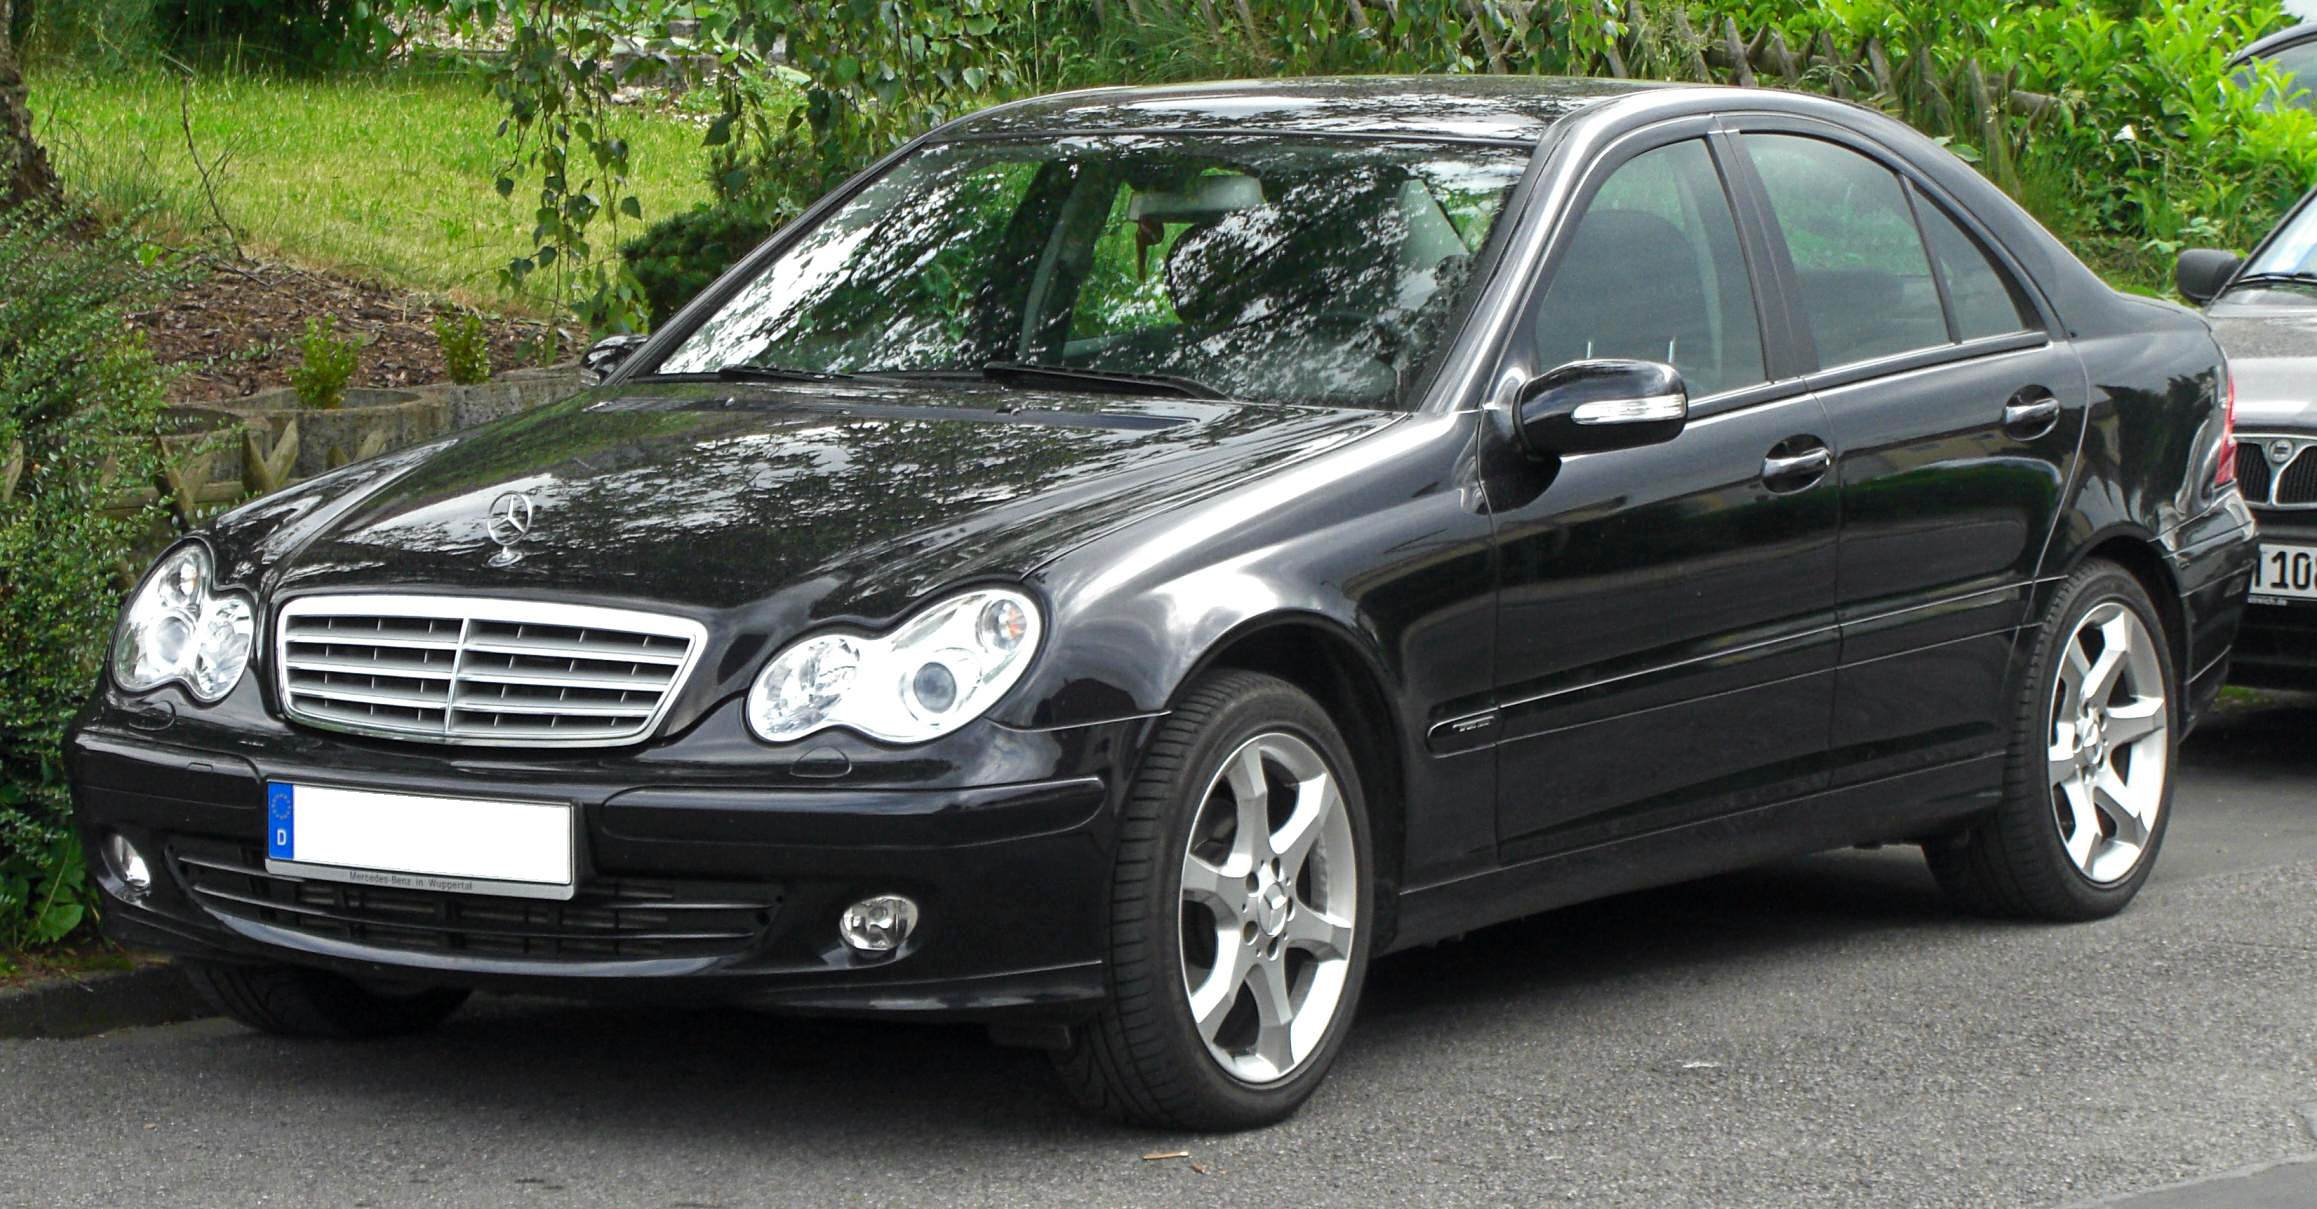 Luxury Car for Private Transfer